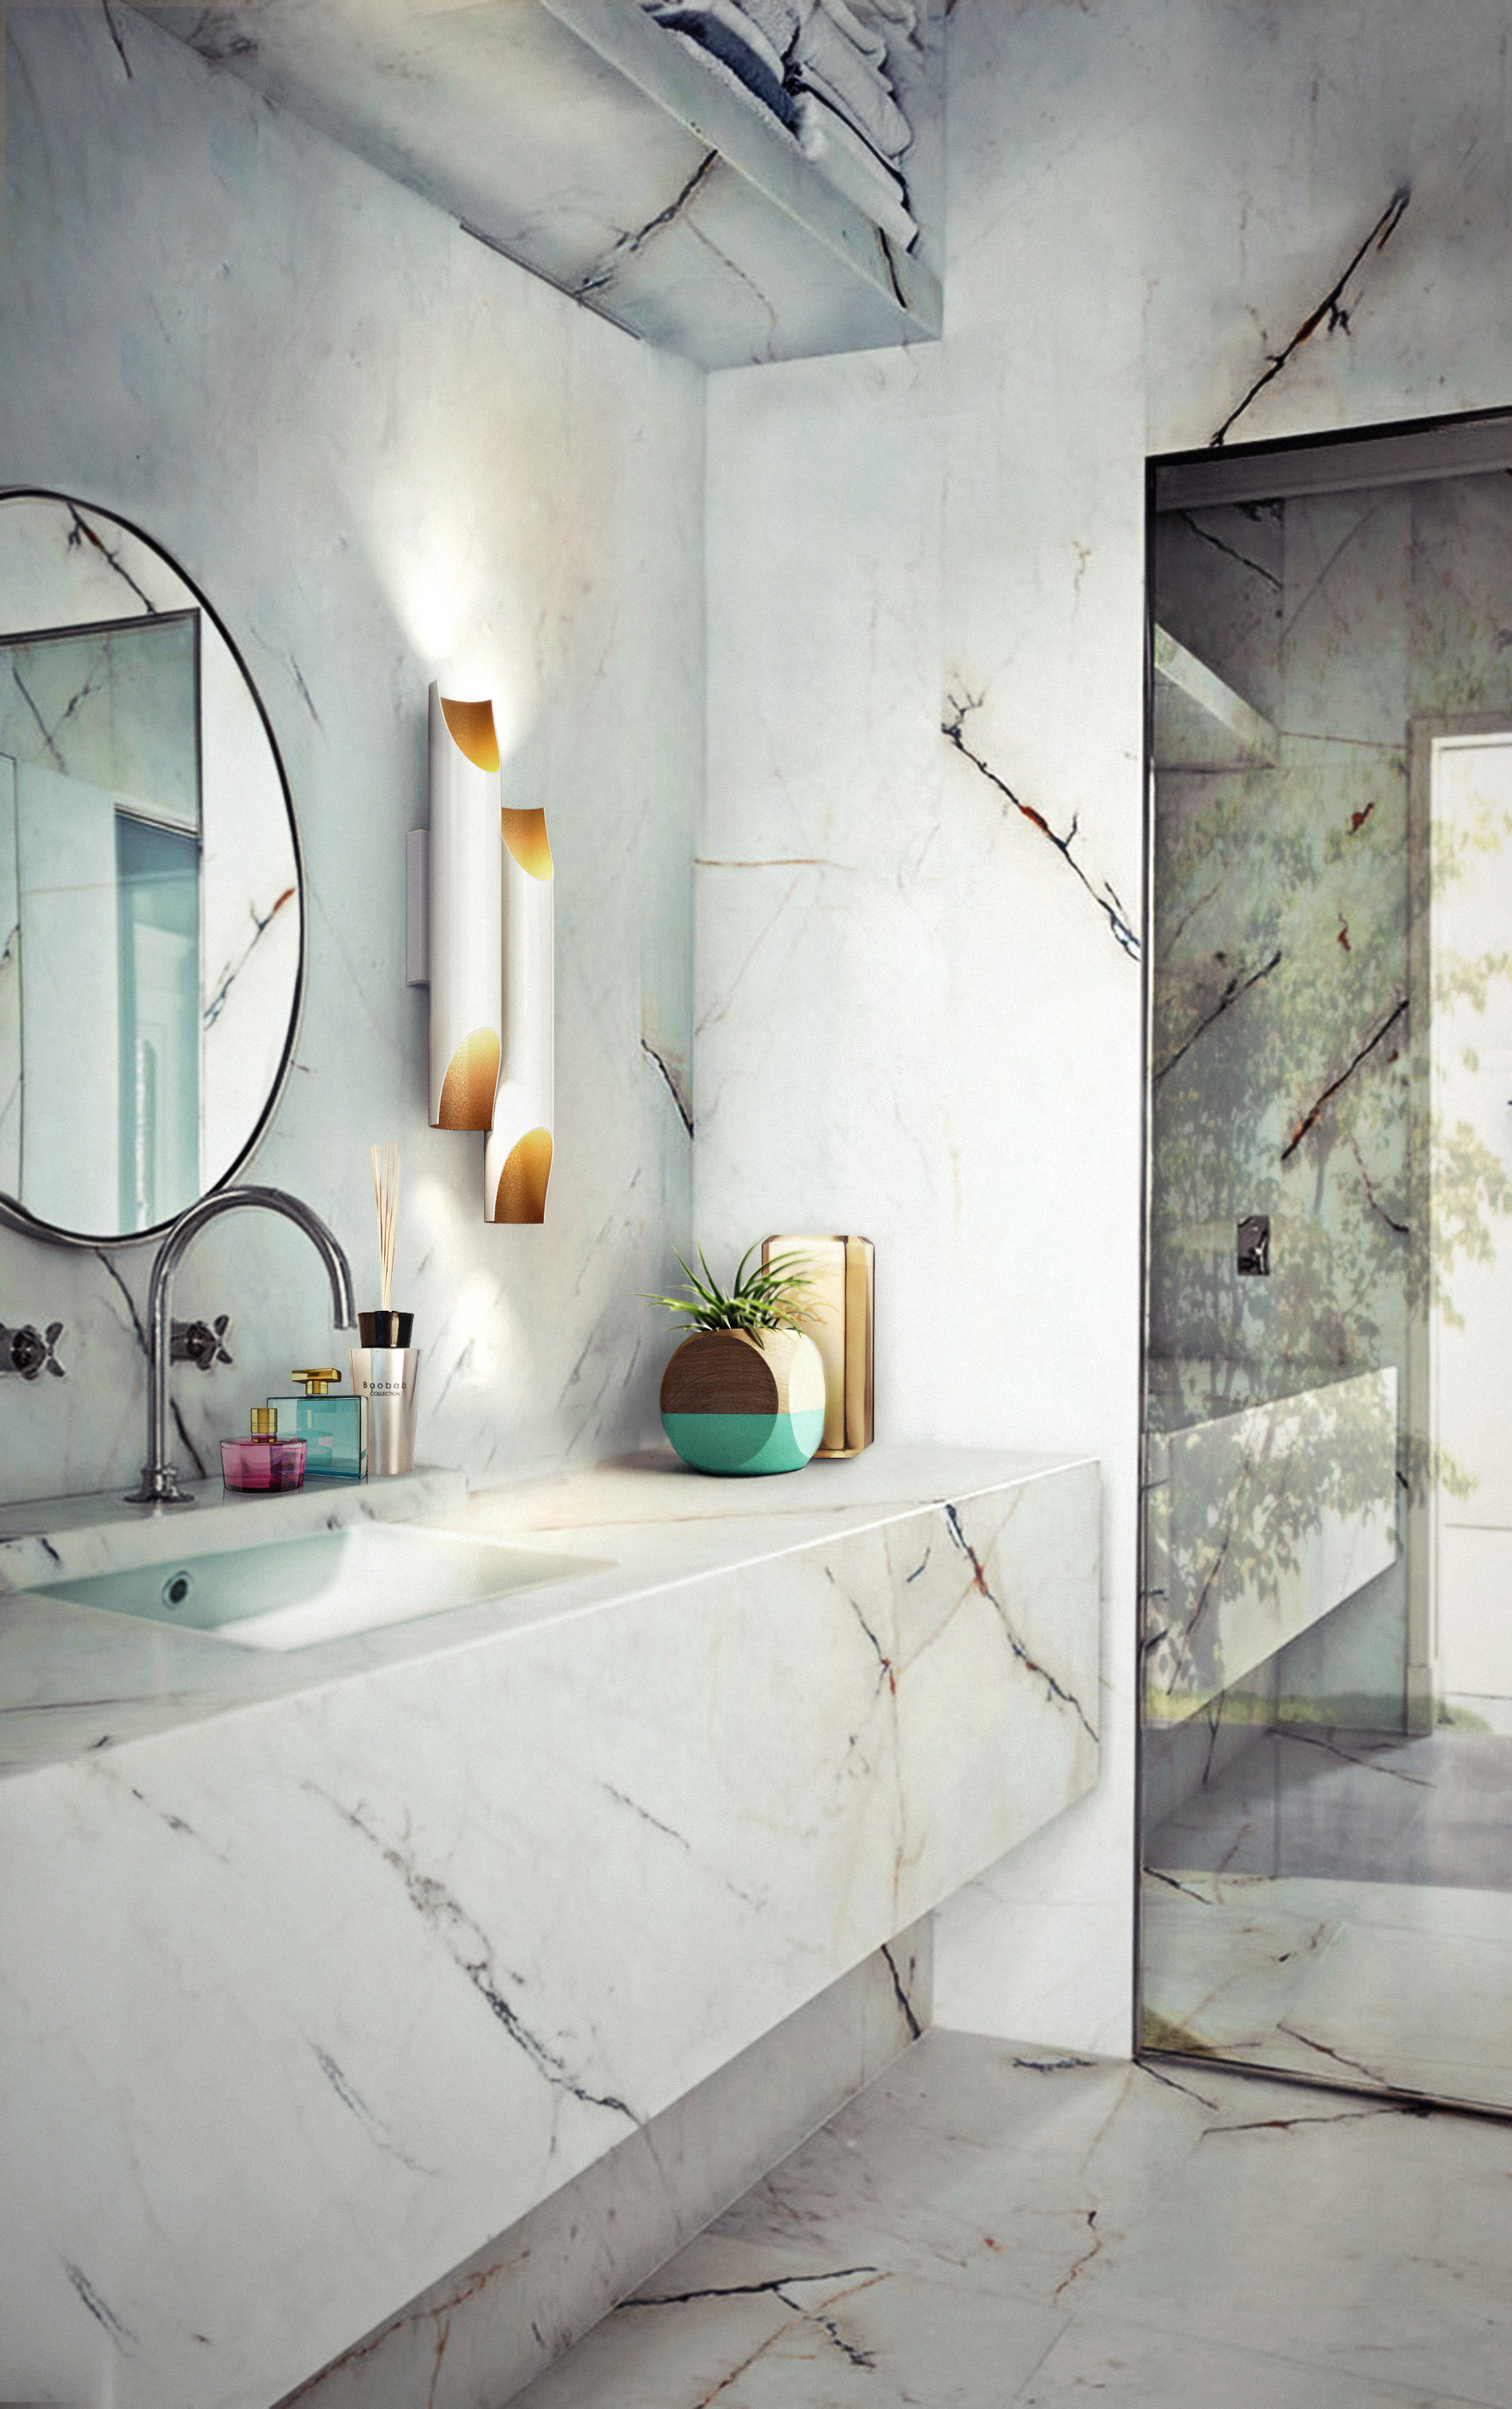 How To Use Pendant Lights In A Bathroom Design Unique Blog